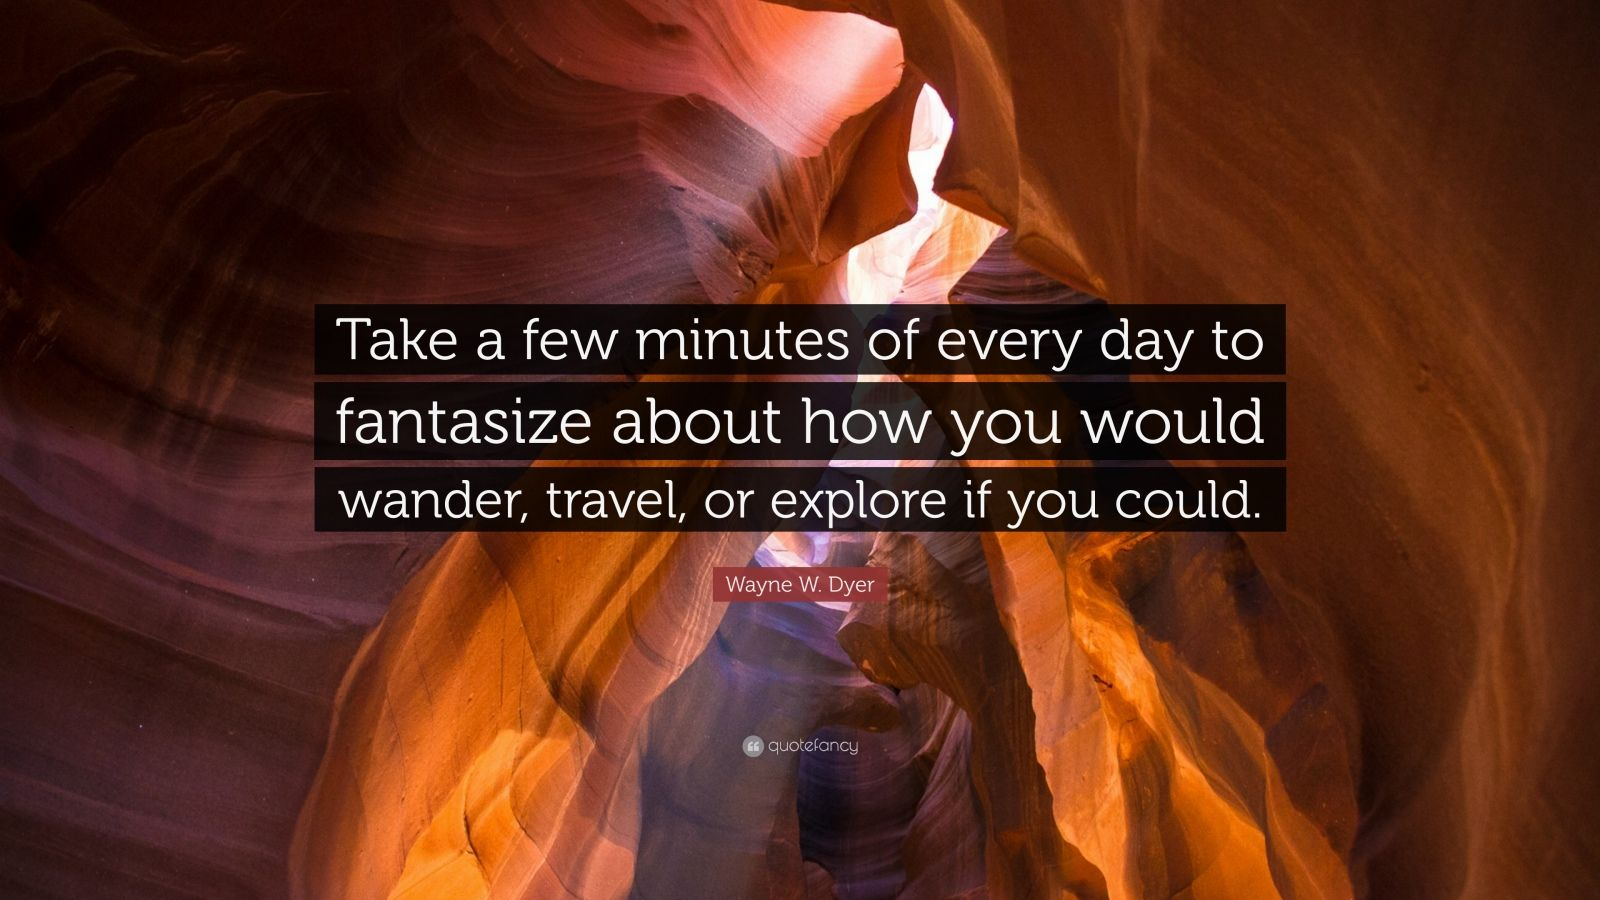 """Wayne W. Dyer Quote: """"Take a few minutes of every day to fantasize about how you would wander, travel, or explore if you could."""""""